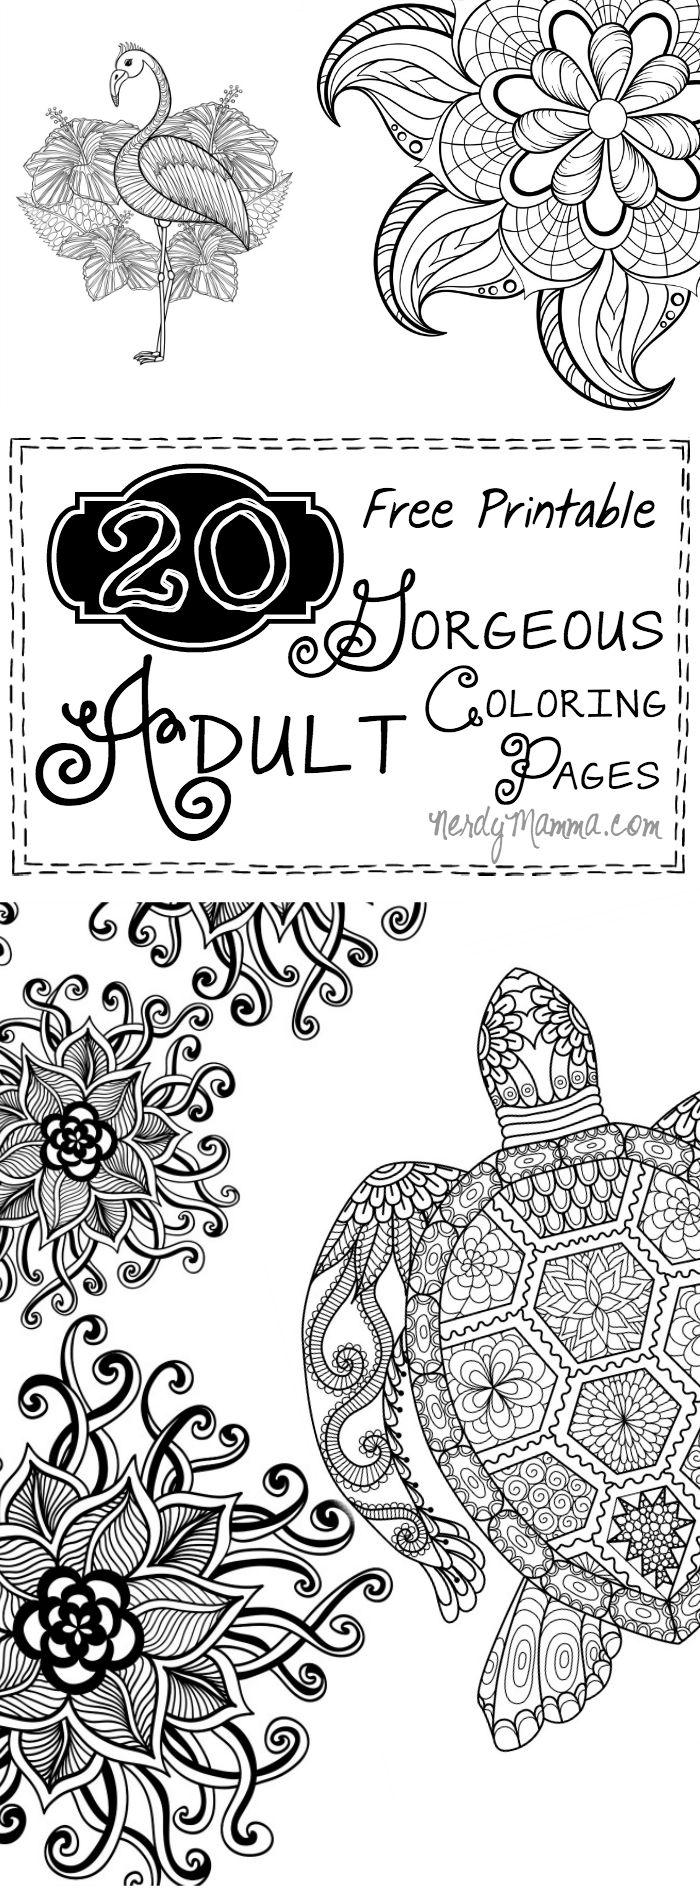 Family guy colouring in sheets - 20 Gorgeous Free Printable Adult Coloring Pages